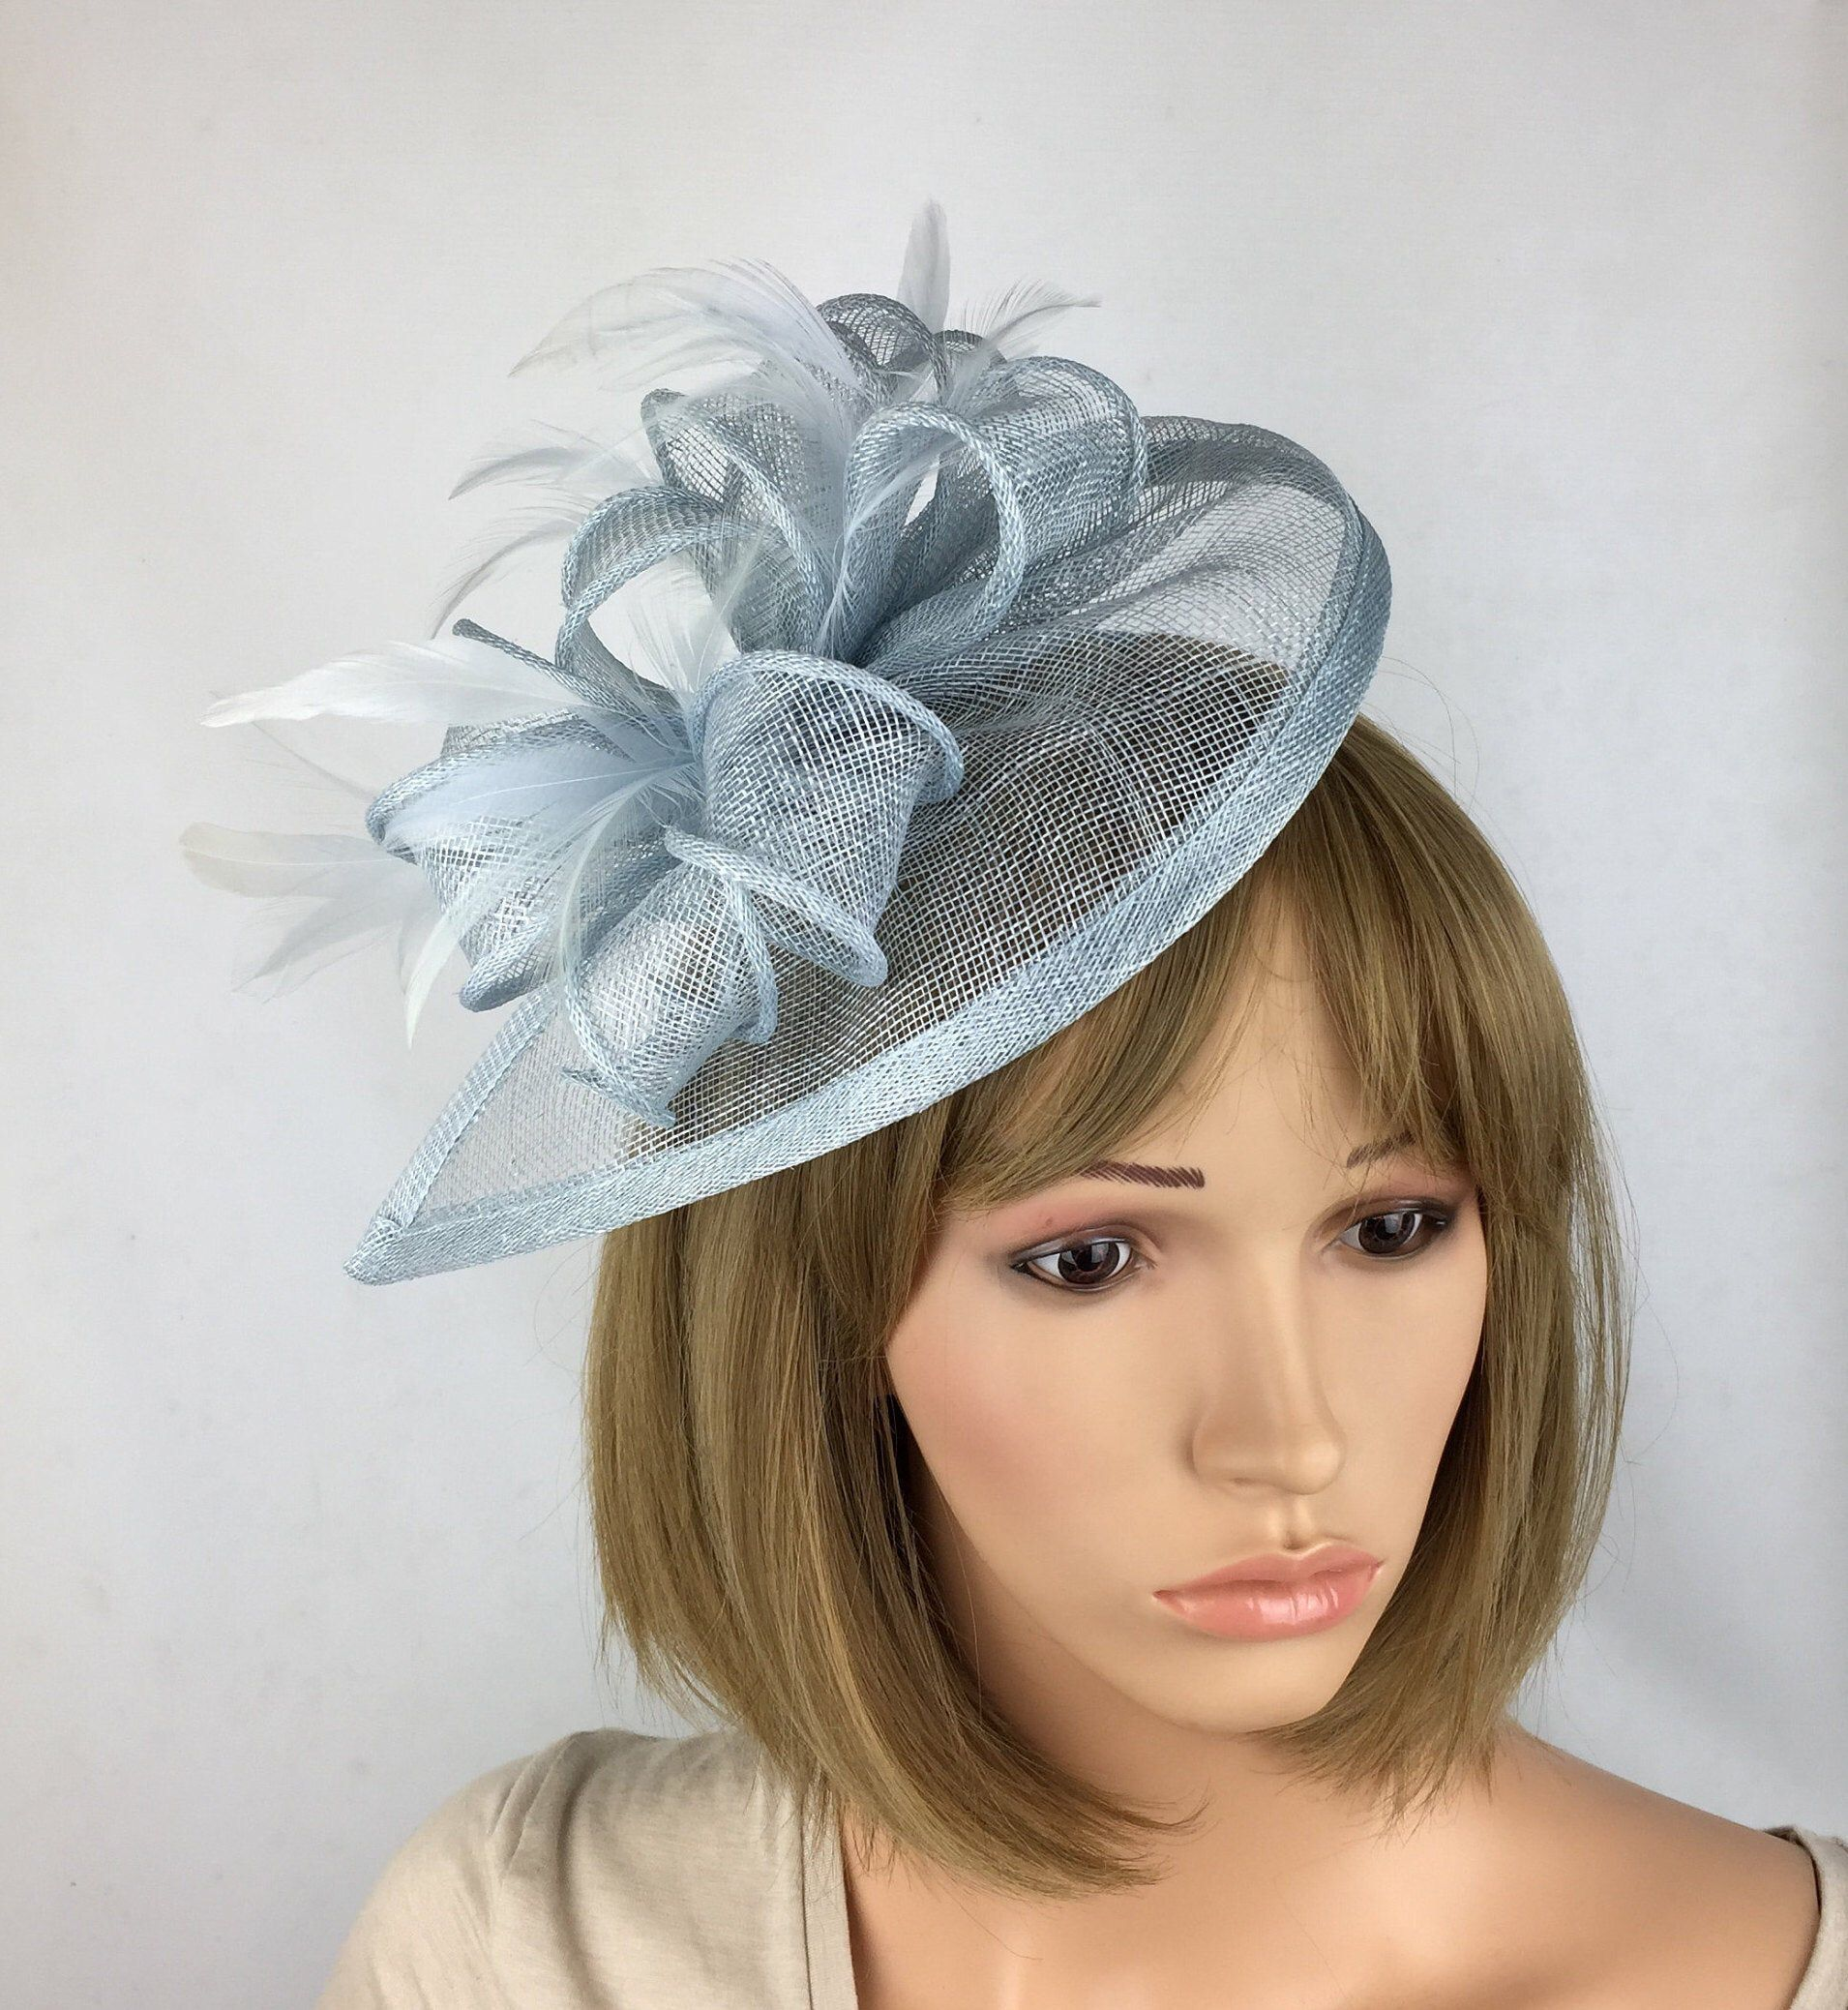 Pale Blue Fascinator Pastel Blue Baby Blue Fascinator Hatinator Teardrop Wedding Hat Mother of the Bride Ladies Day & Ascot races occasion H #fascinatorstyles • Perfect Pale Blue hair fascinator for any outfit, for a wedding, mother of the bride or guest, a day at the races, a tea party, bbq, dinner dance or a memorable occasion, garden parties, hen night, etc • Striking hat and bow fascinator complemented by beautiful feathers on a curved teardrop • This quality fascinator is mounted on a #fascinatorstyles